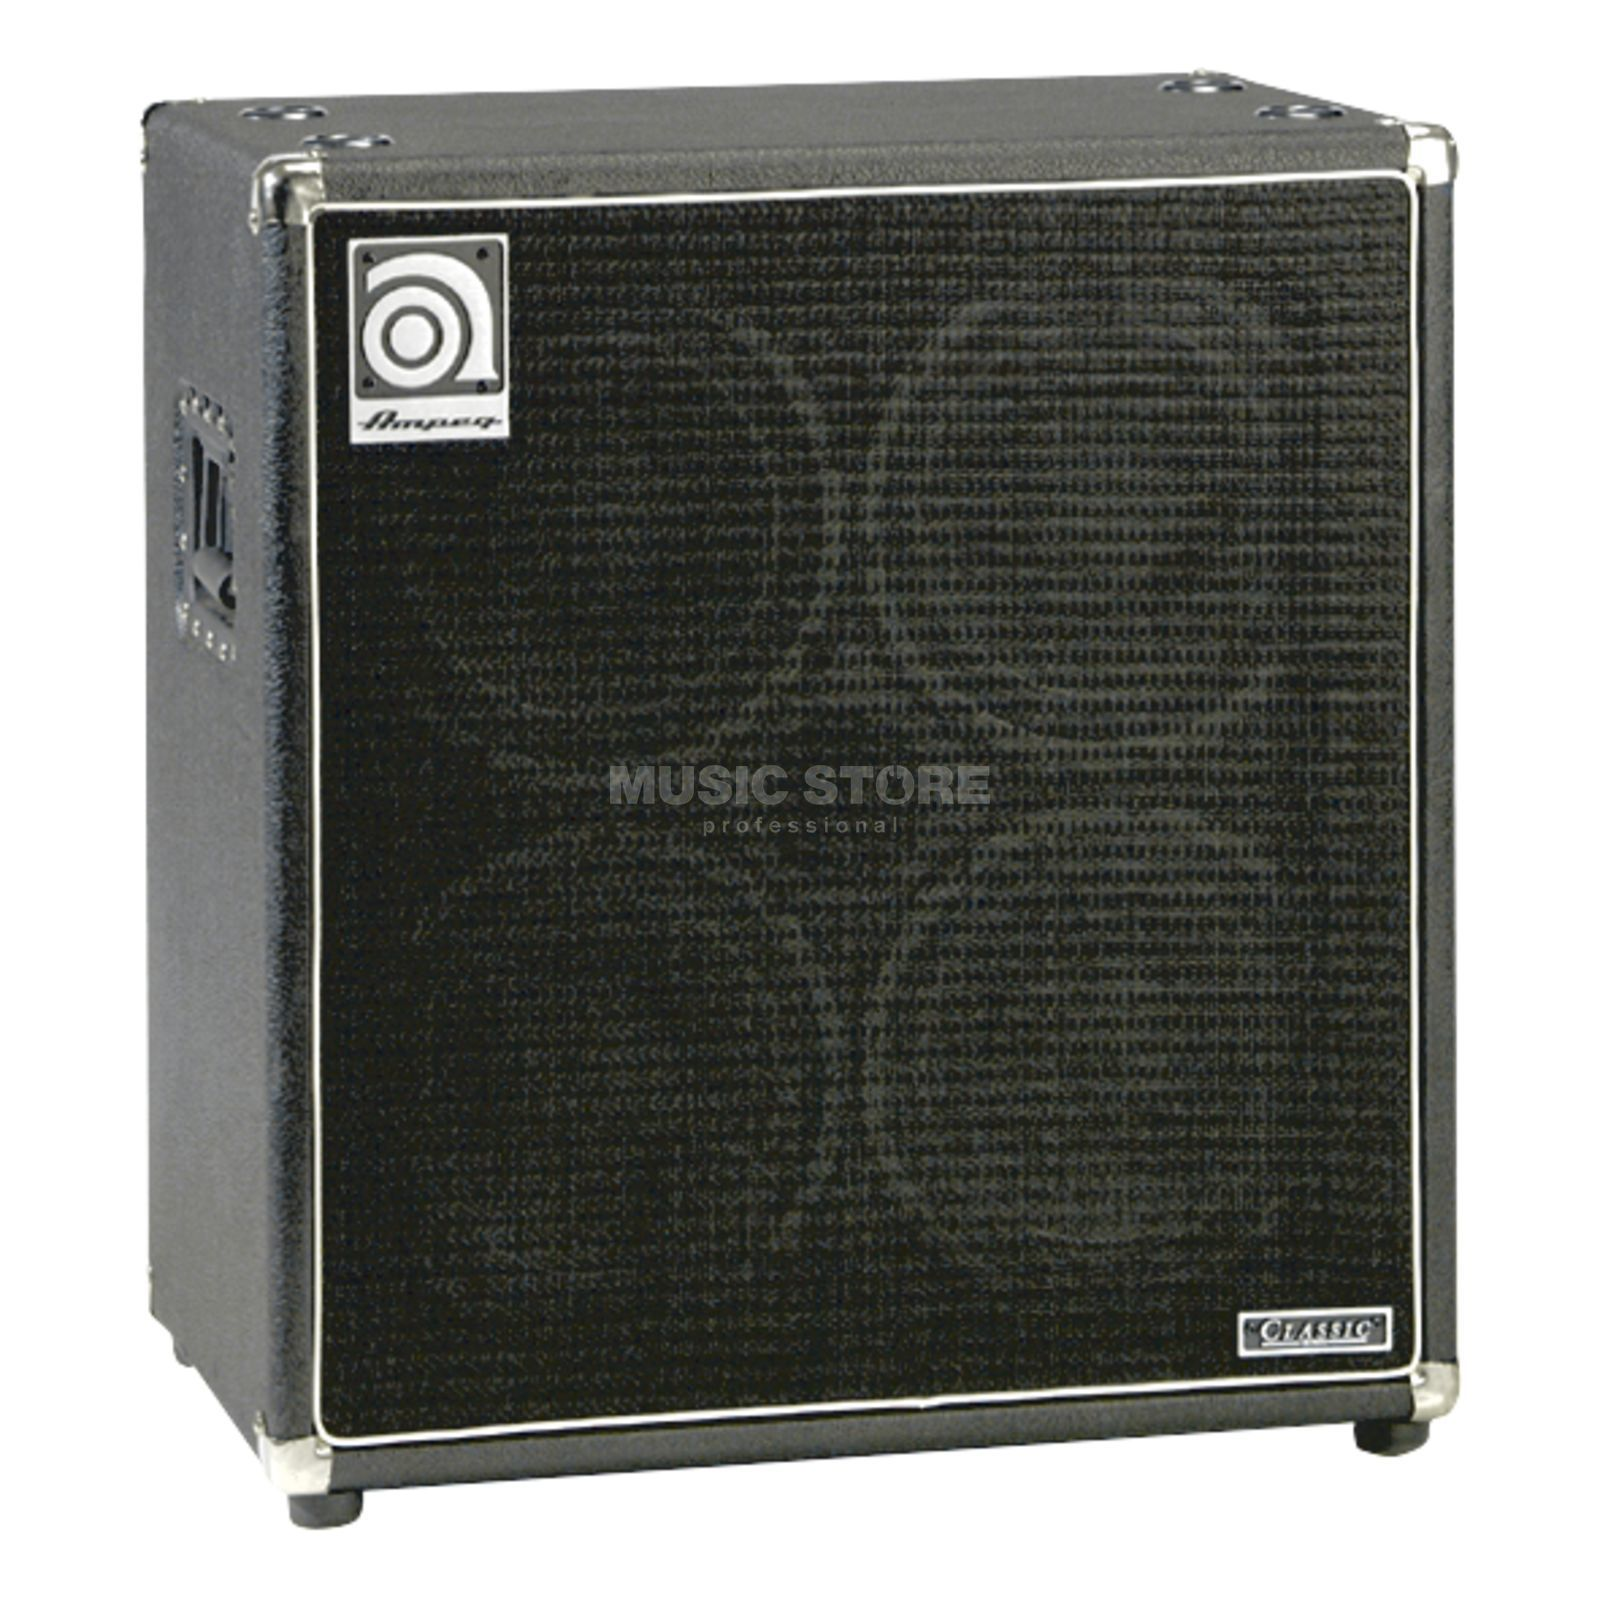 ampeg svt 410 he box 400w 8 ohm 4x10 speaker horn. Black Bedroom Furniture Sets. Home Design Ideas